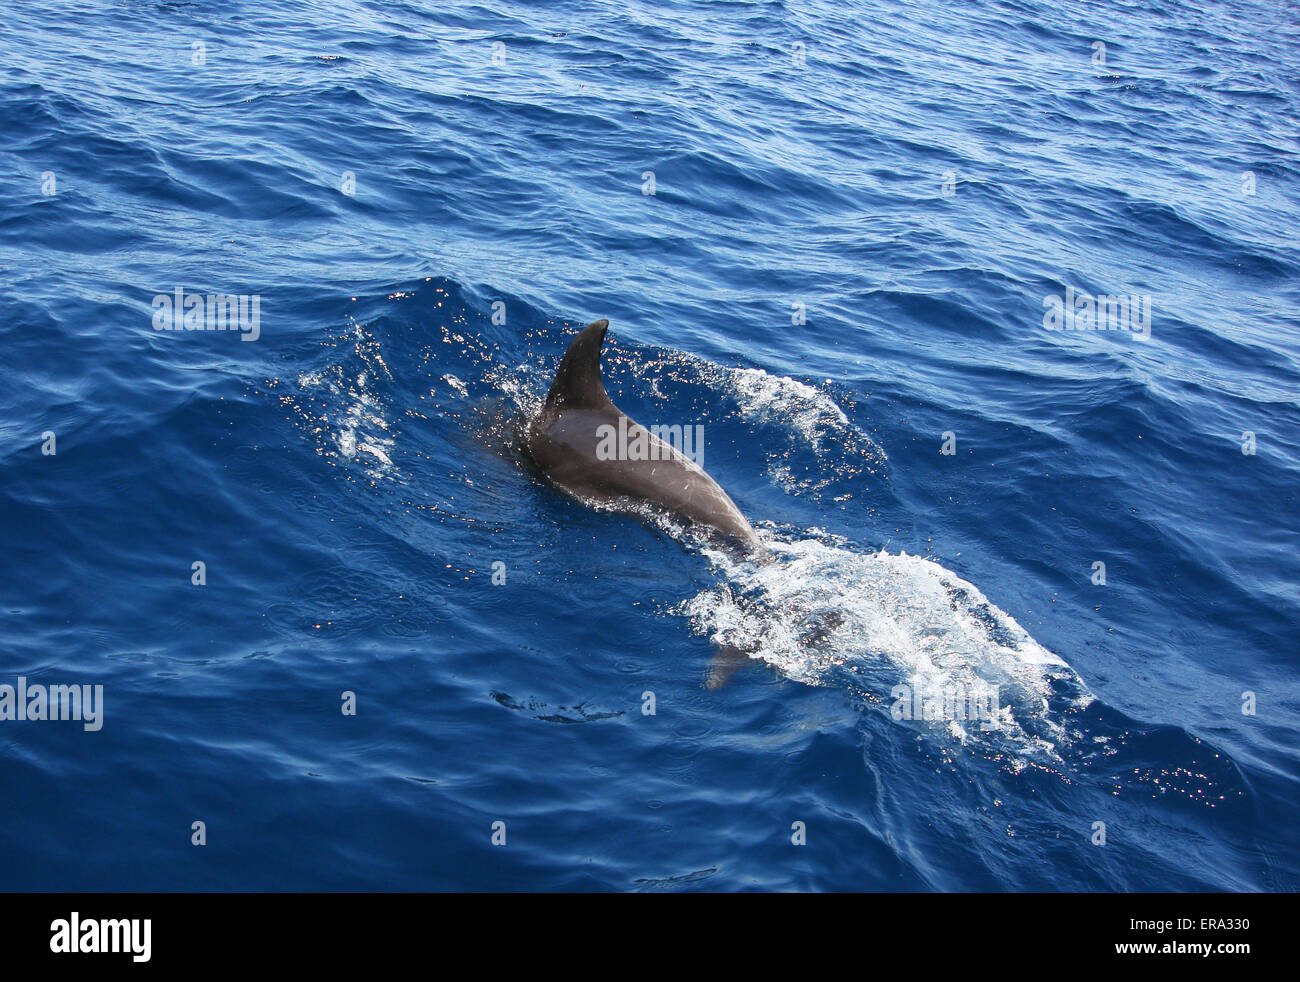 A dolphin in the sea of Oman - Stock Image